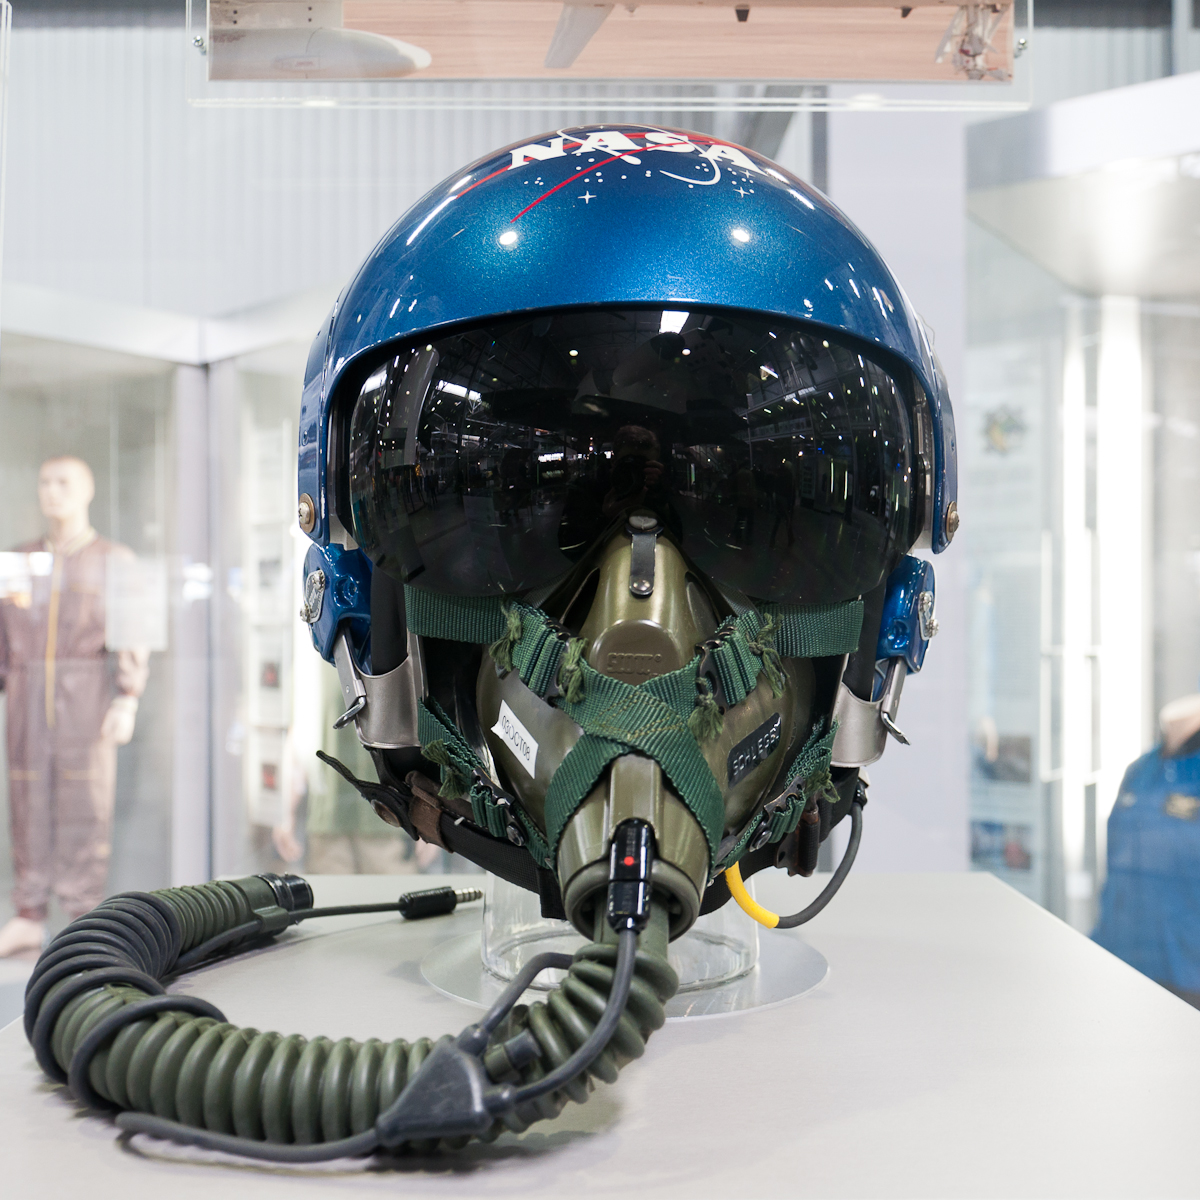 t 38 nasa helmet - photo #2